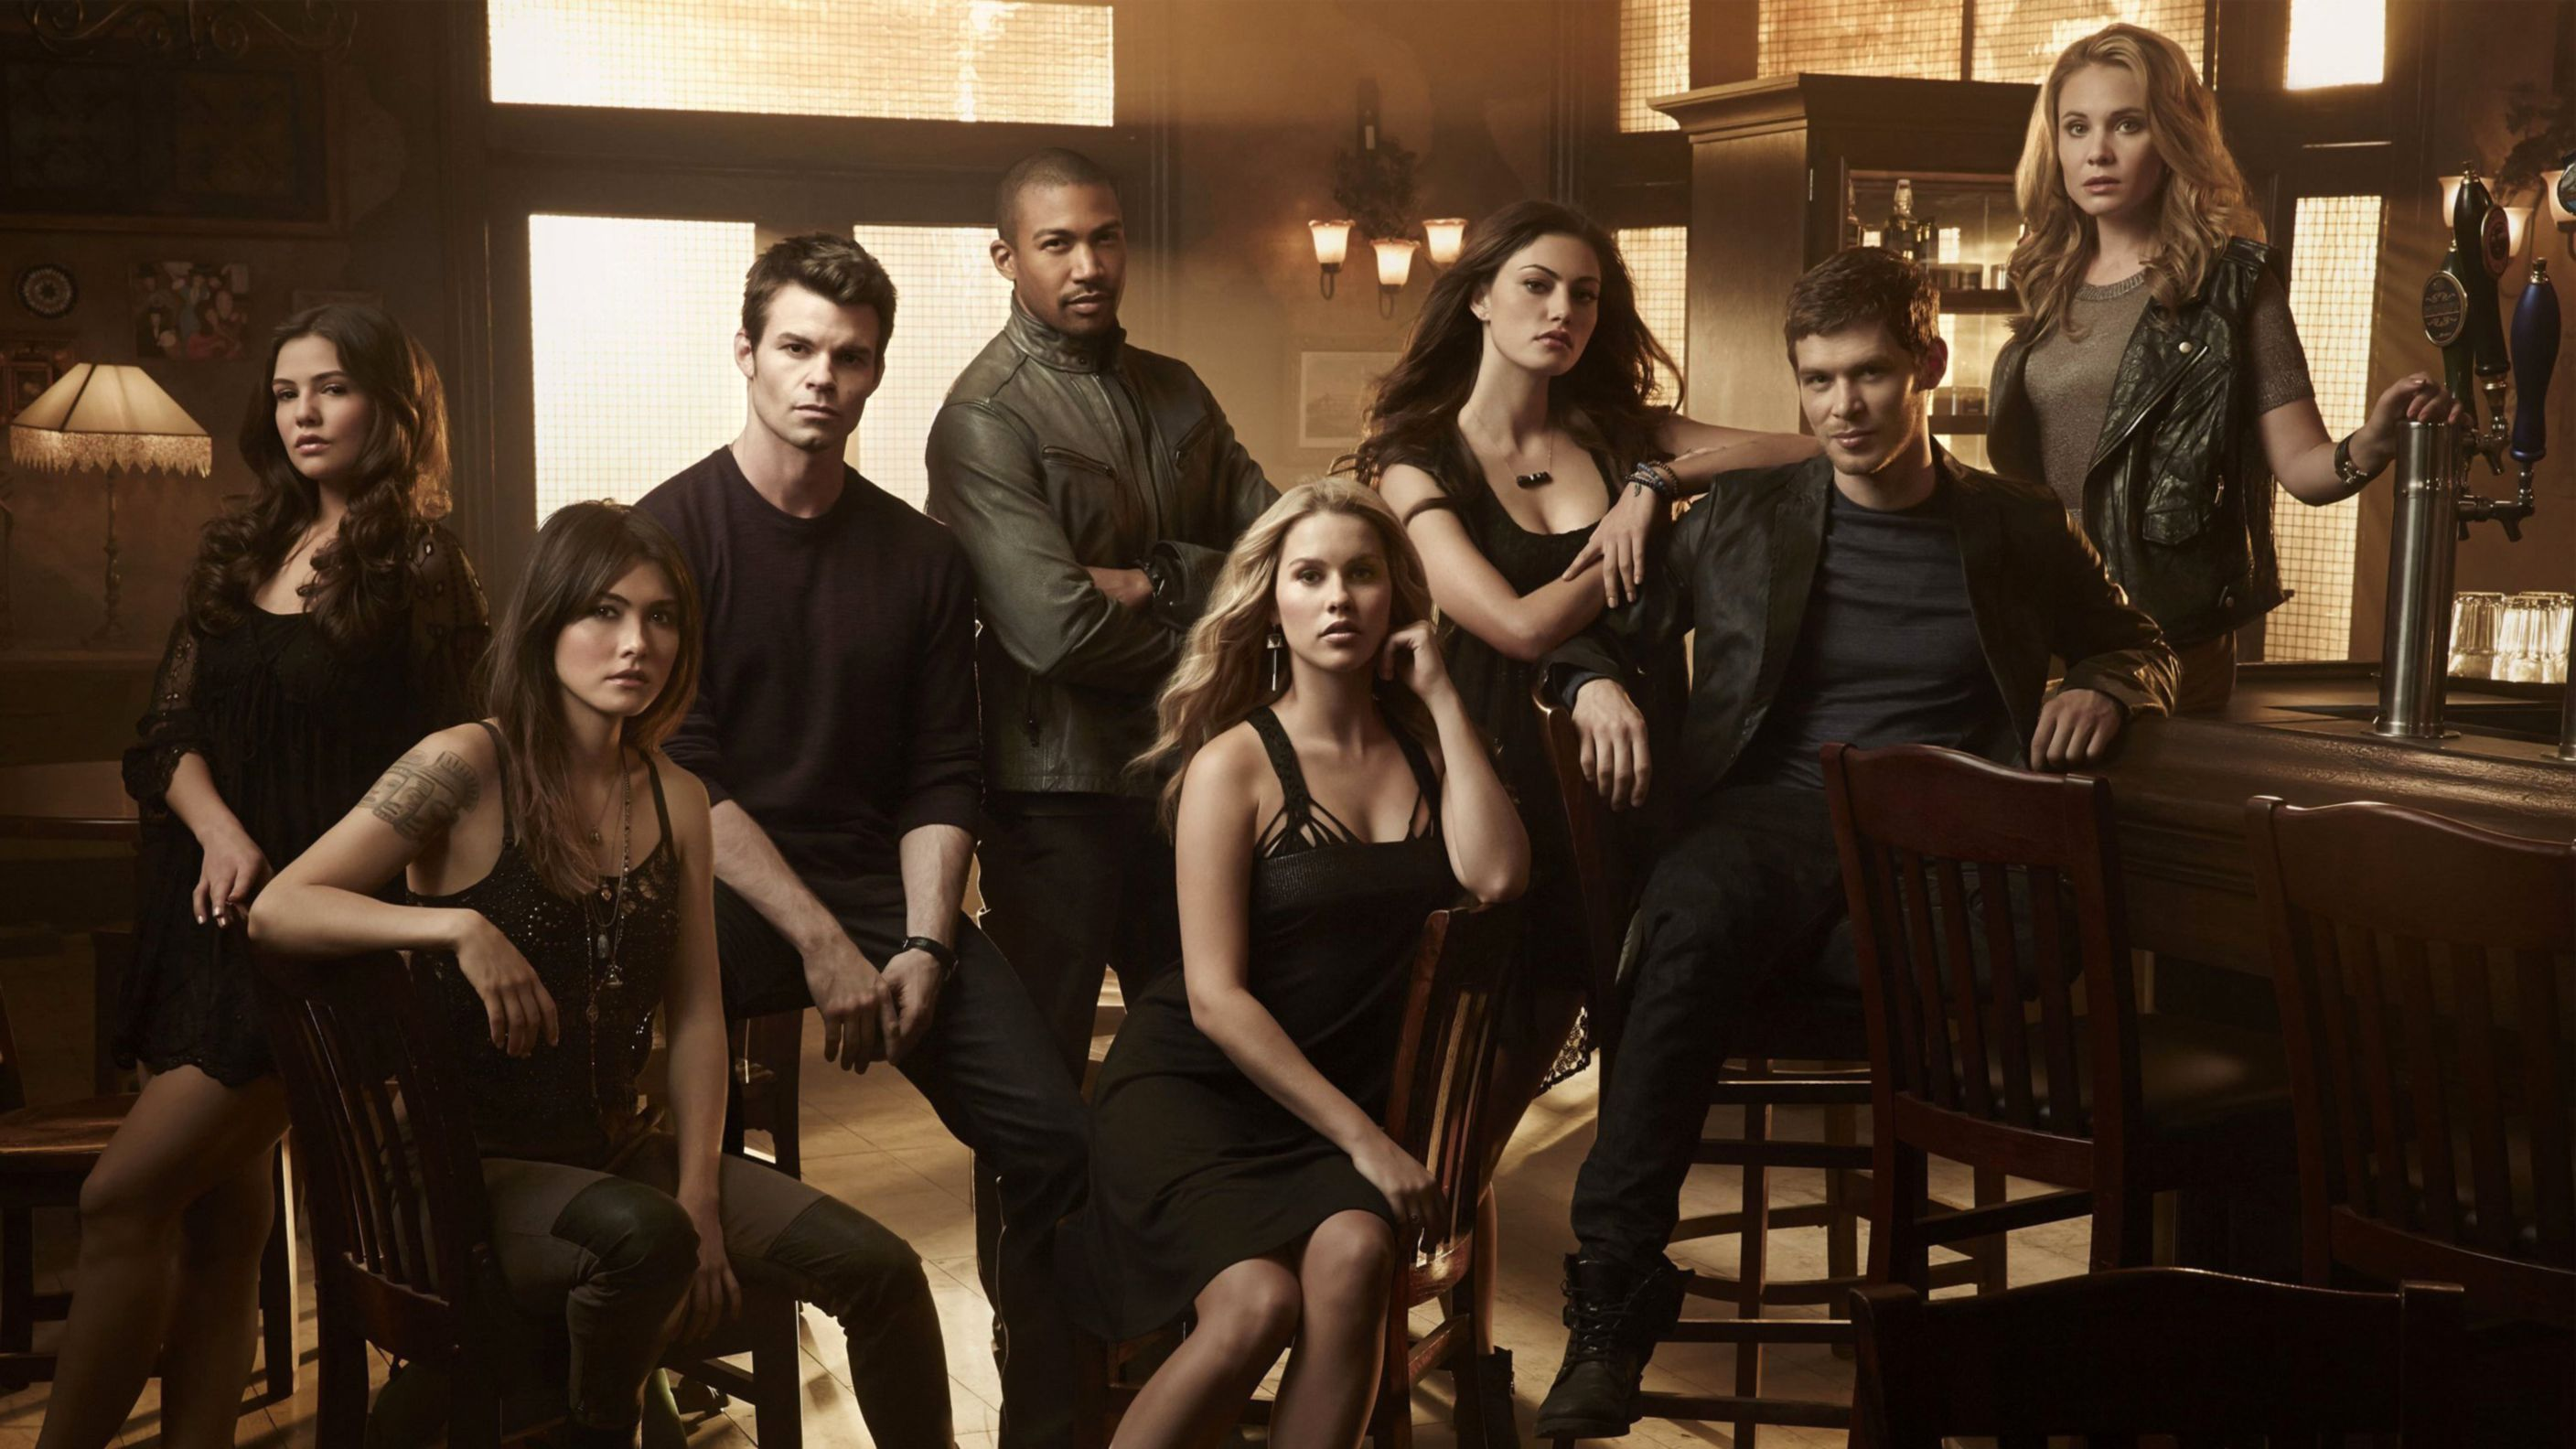 Download free HD The Originals Season 3 HD Wallpaper, image